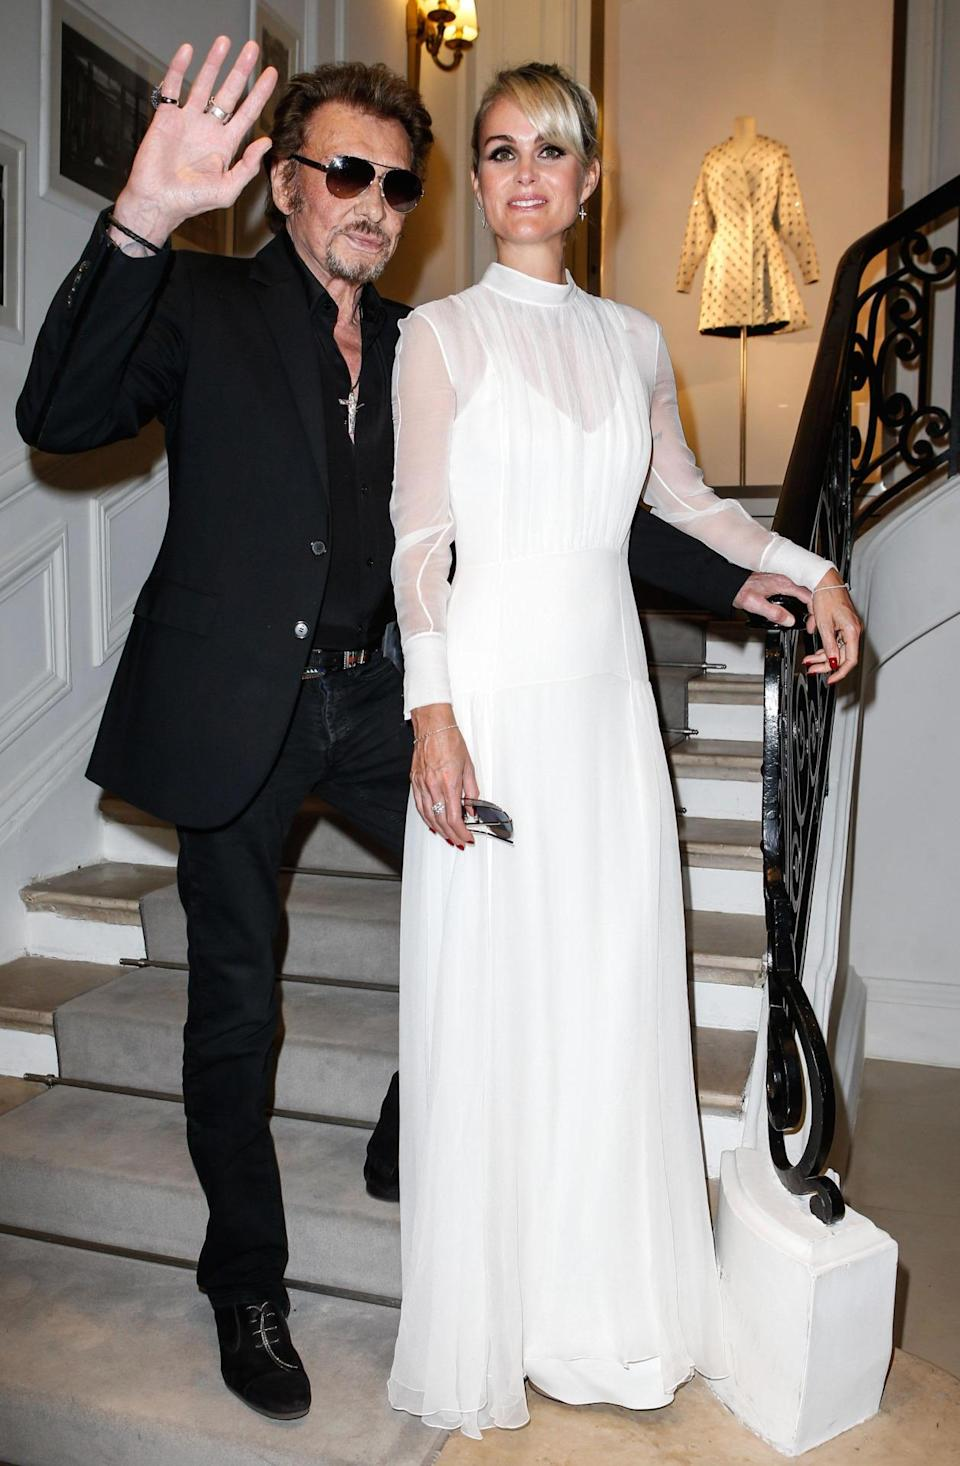 <p>French music legend Johnny Hallyday and his wife also attended the Dior show. <i>[Photo:PIXELFORMULA / SIPA/SIPA/REX/Shutterstock]</i></p>